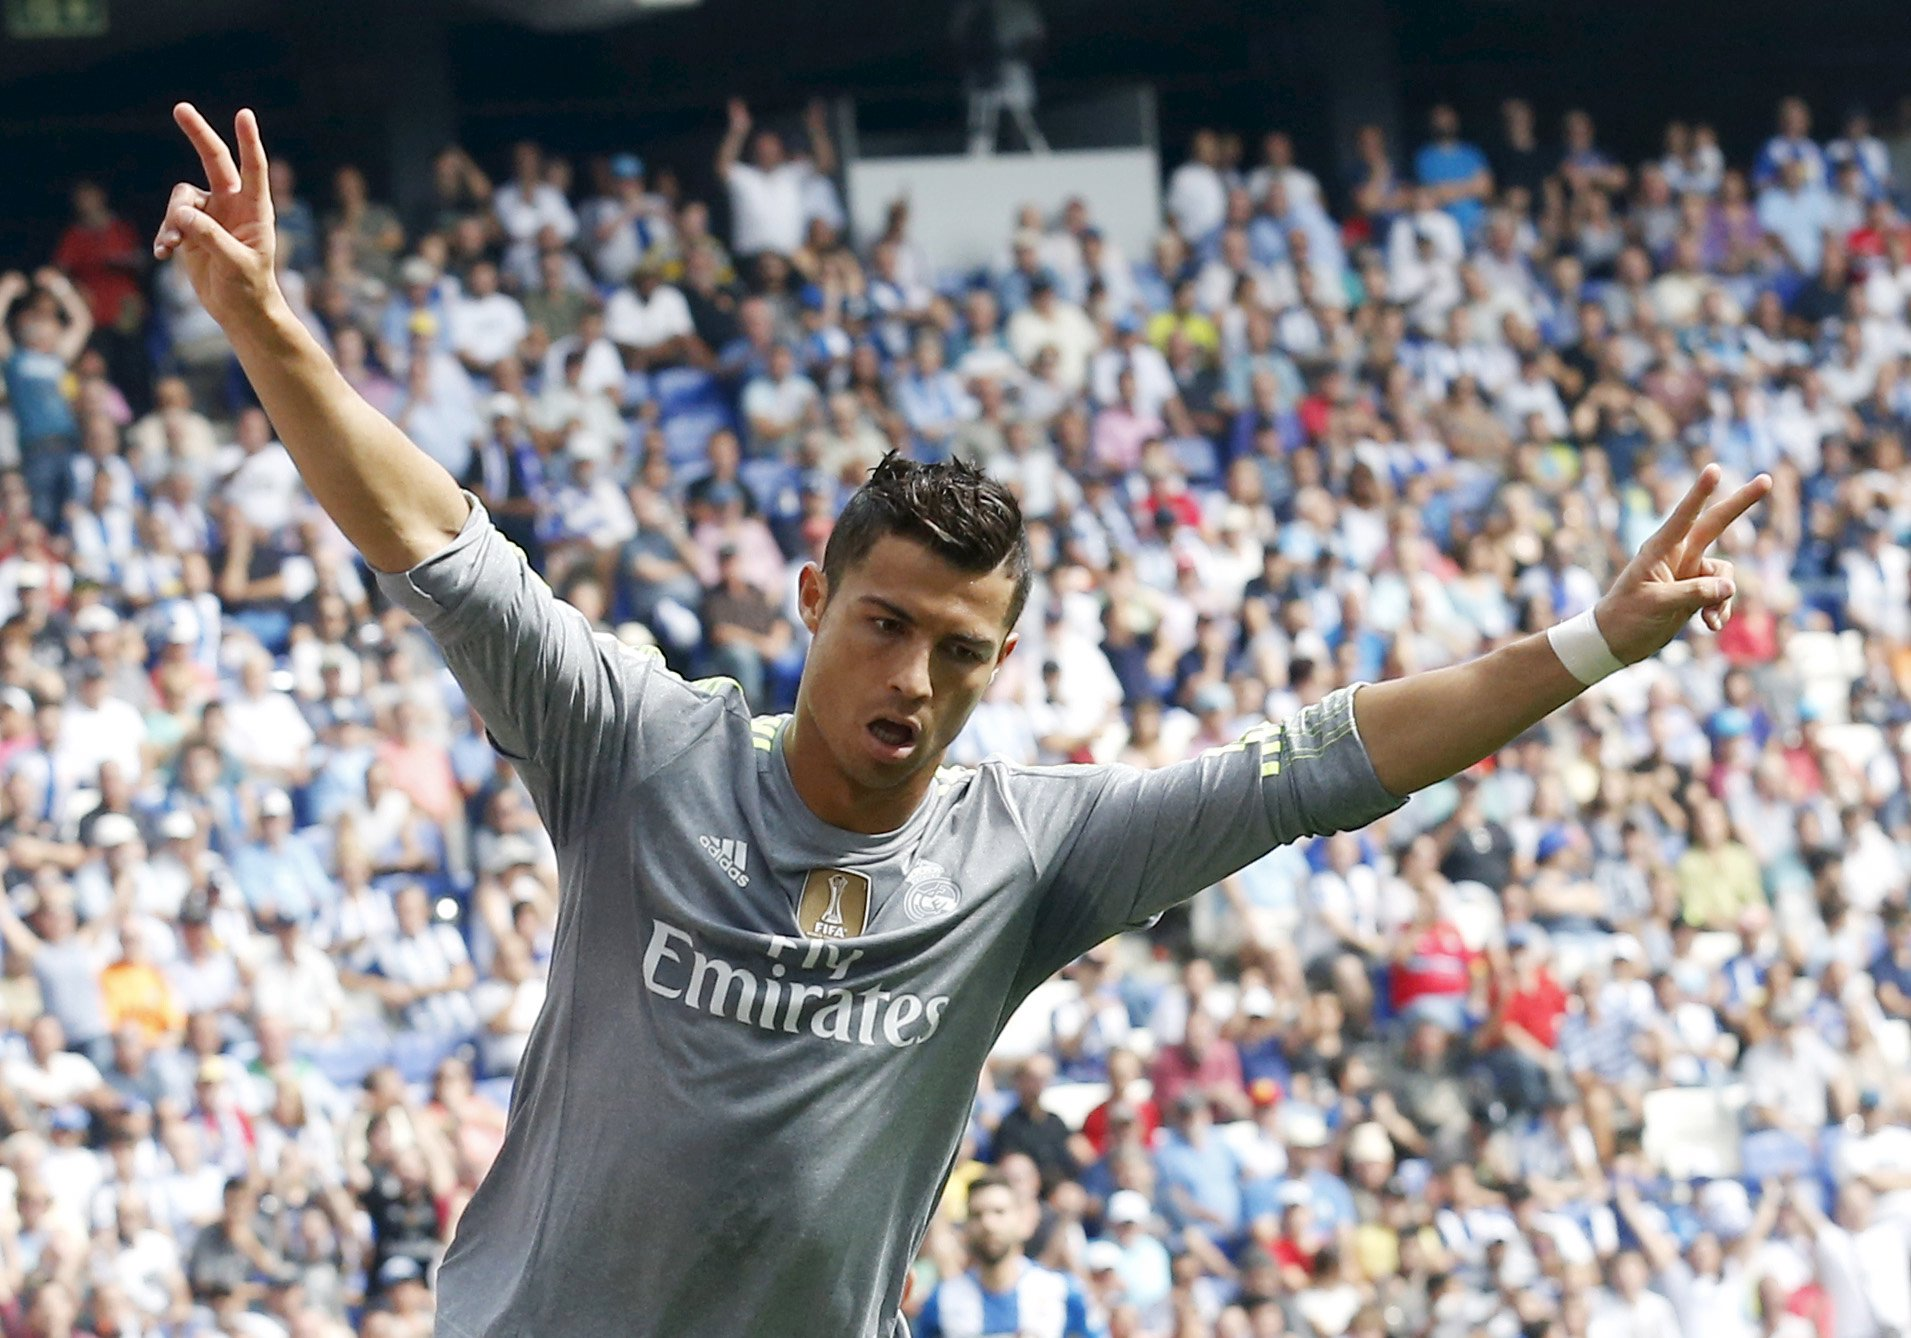 Real Madrid's Cristiano Ronaldo celebrates a goal against Espanyol during their Spanish first division soccer match in Cornella de Llobregat, near Barcelona, Spain, September 12, 2015.  Photo: Reuters